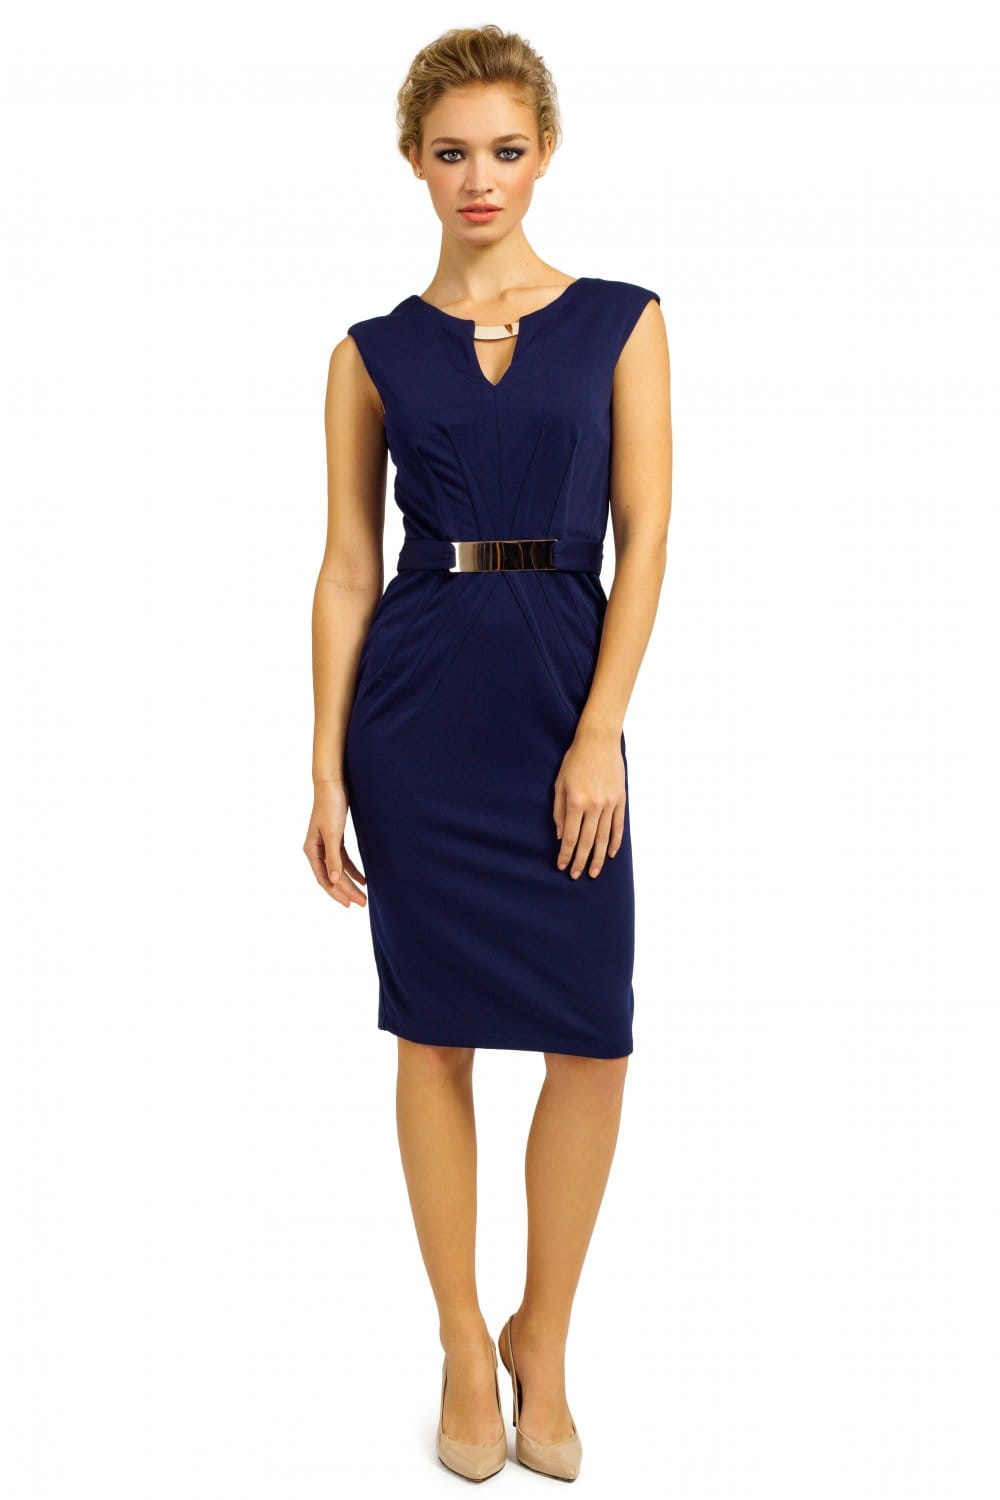 Navy Gold Chocker Amp Gold Belted Pencil Dress